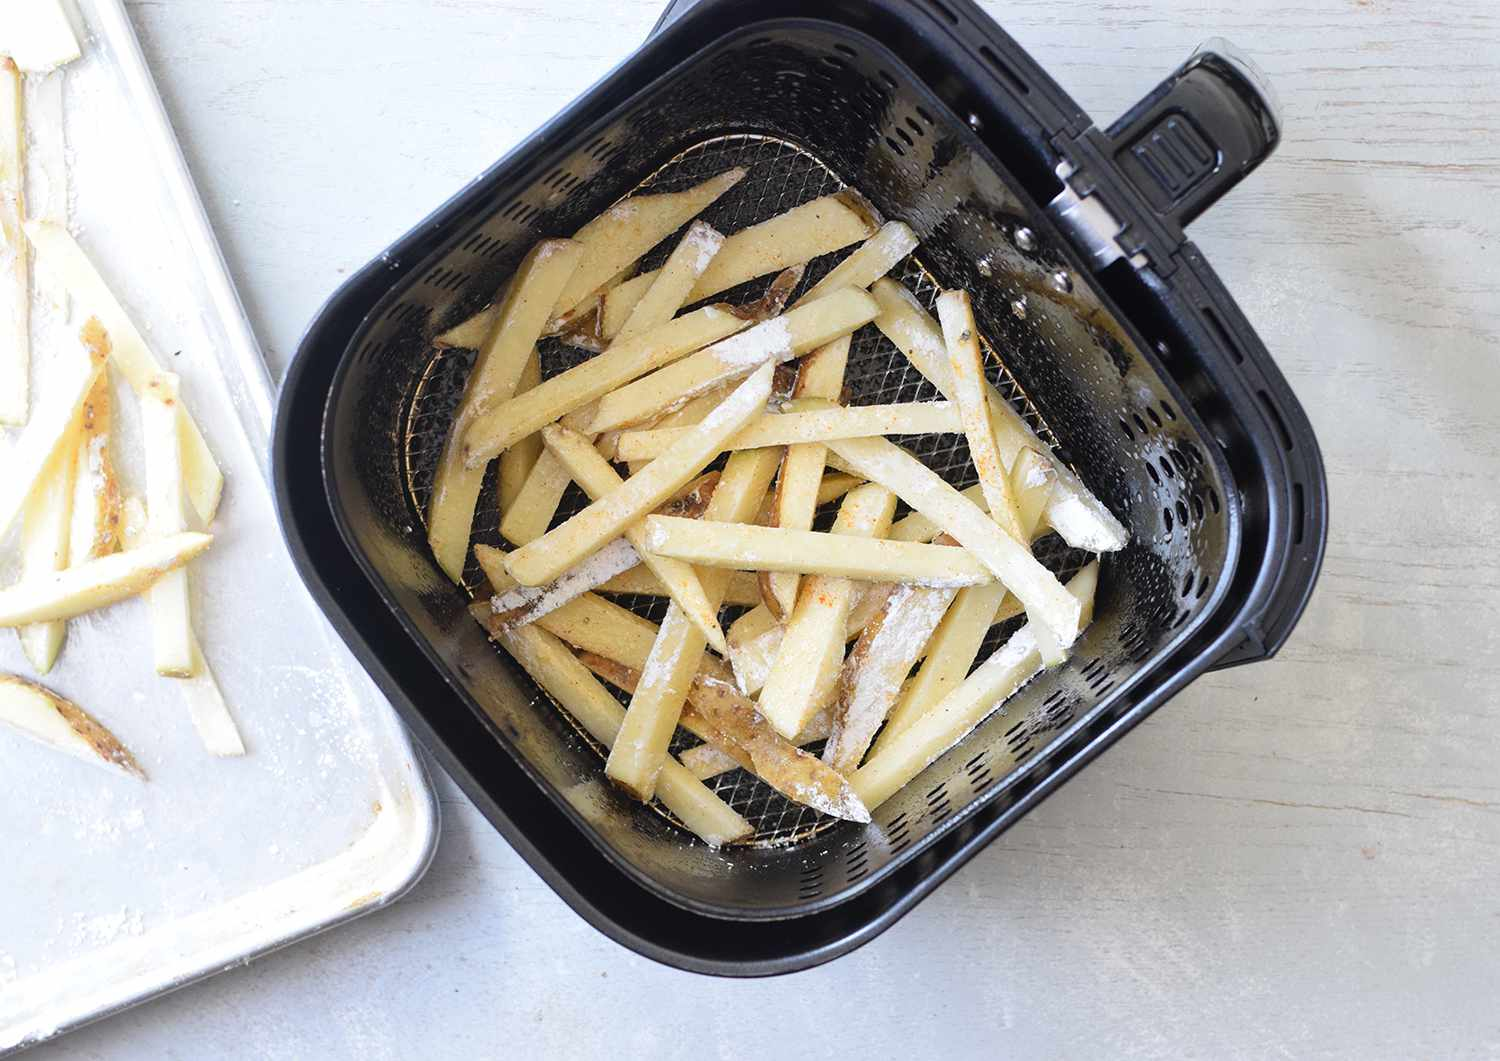 Add fries to air fryer